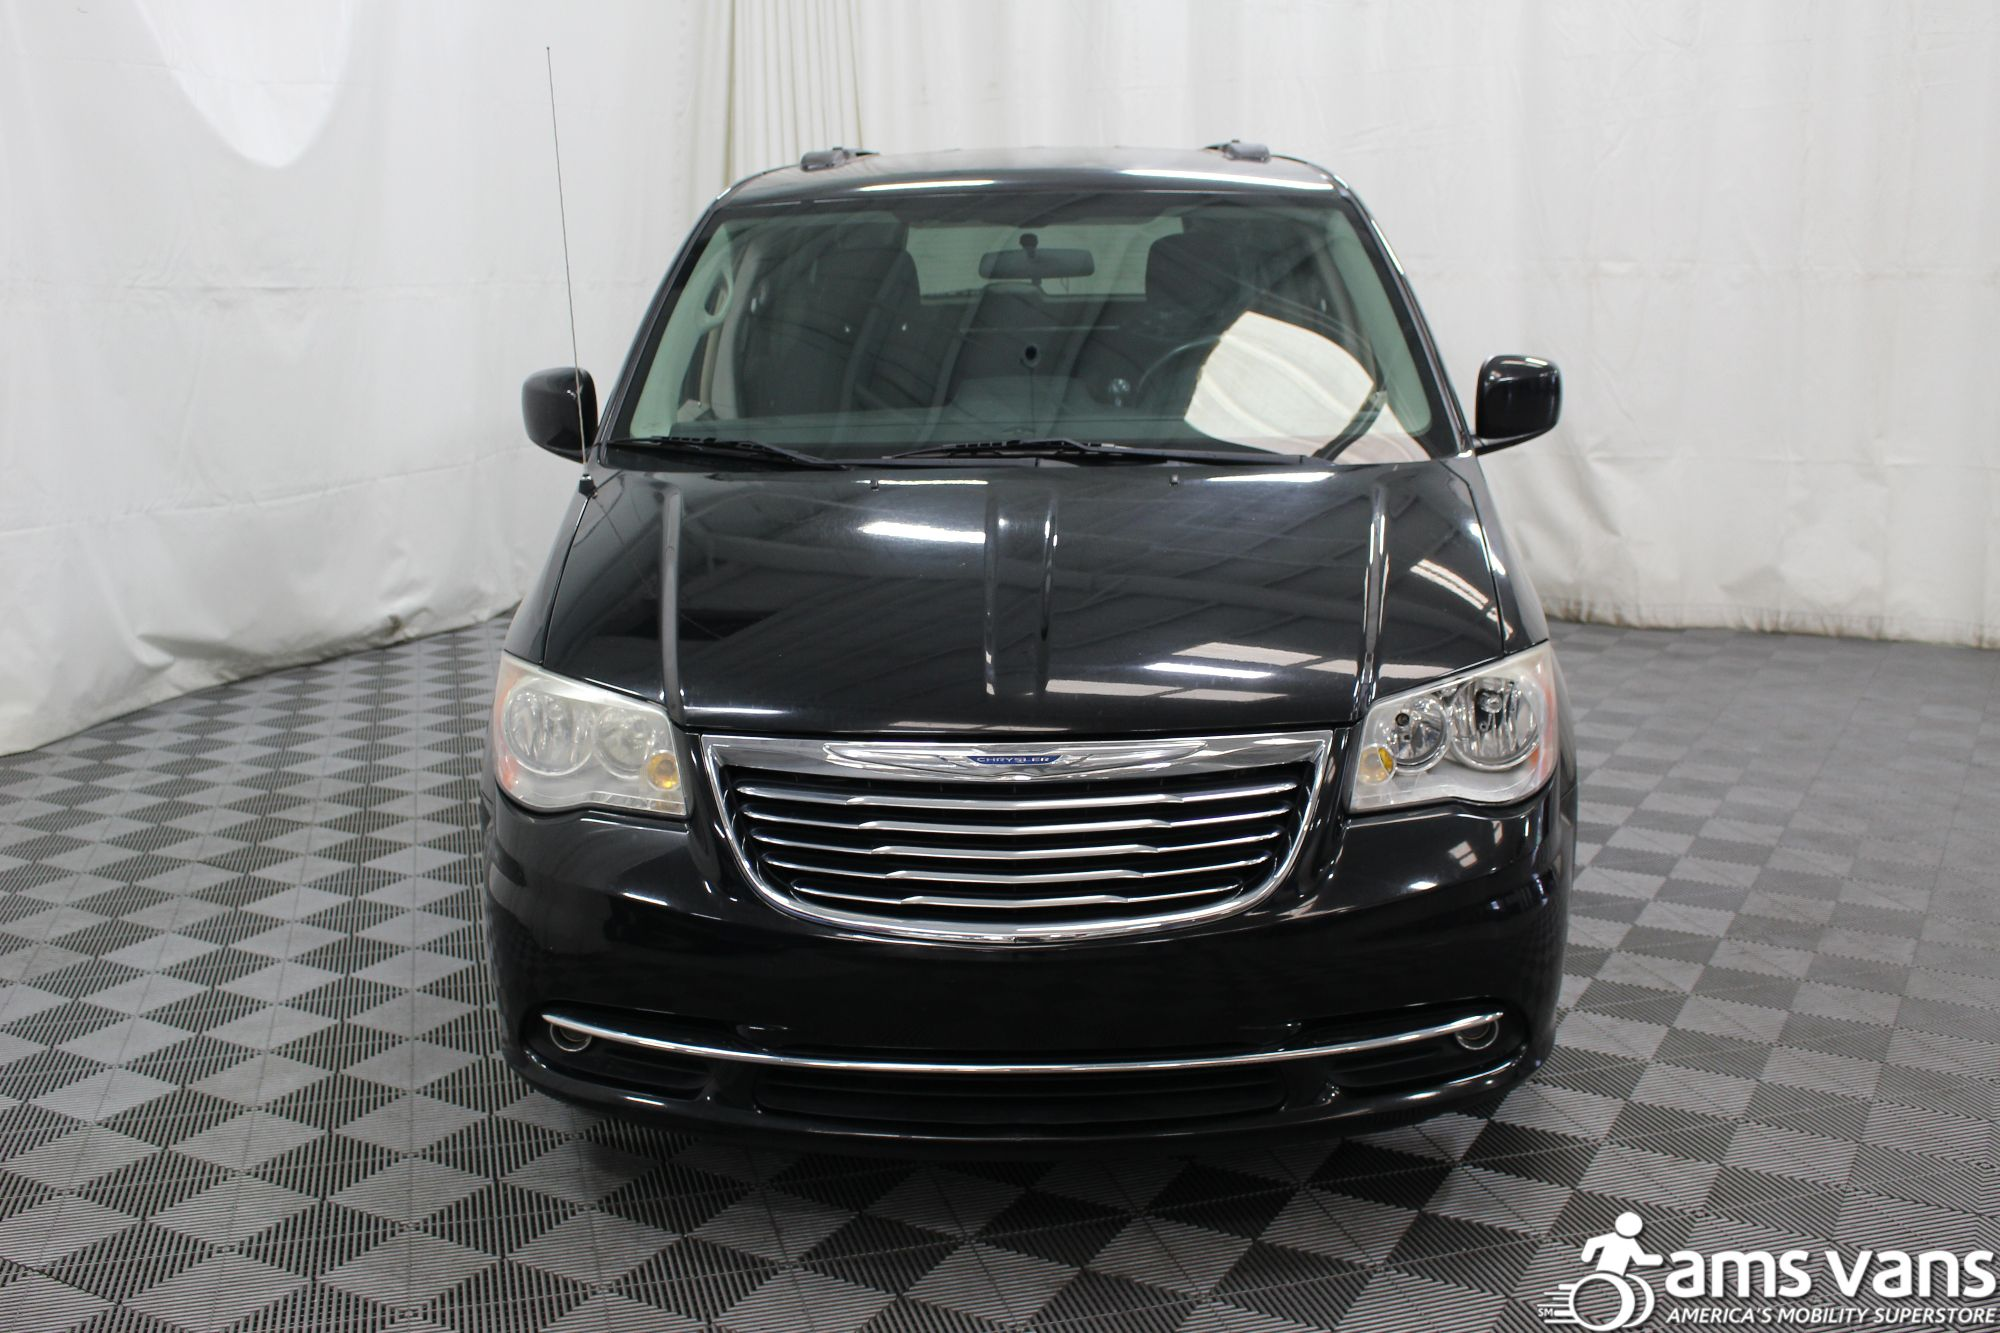 2011 Chrysler Town and Country Touring Wheelchair Van For Sale #15